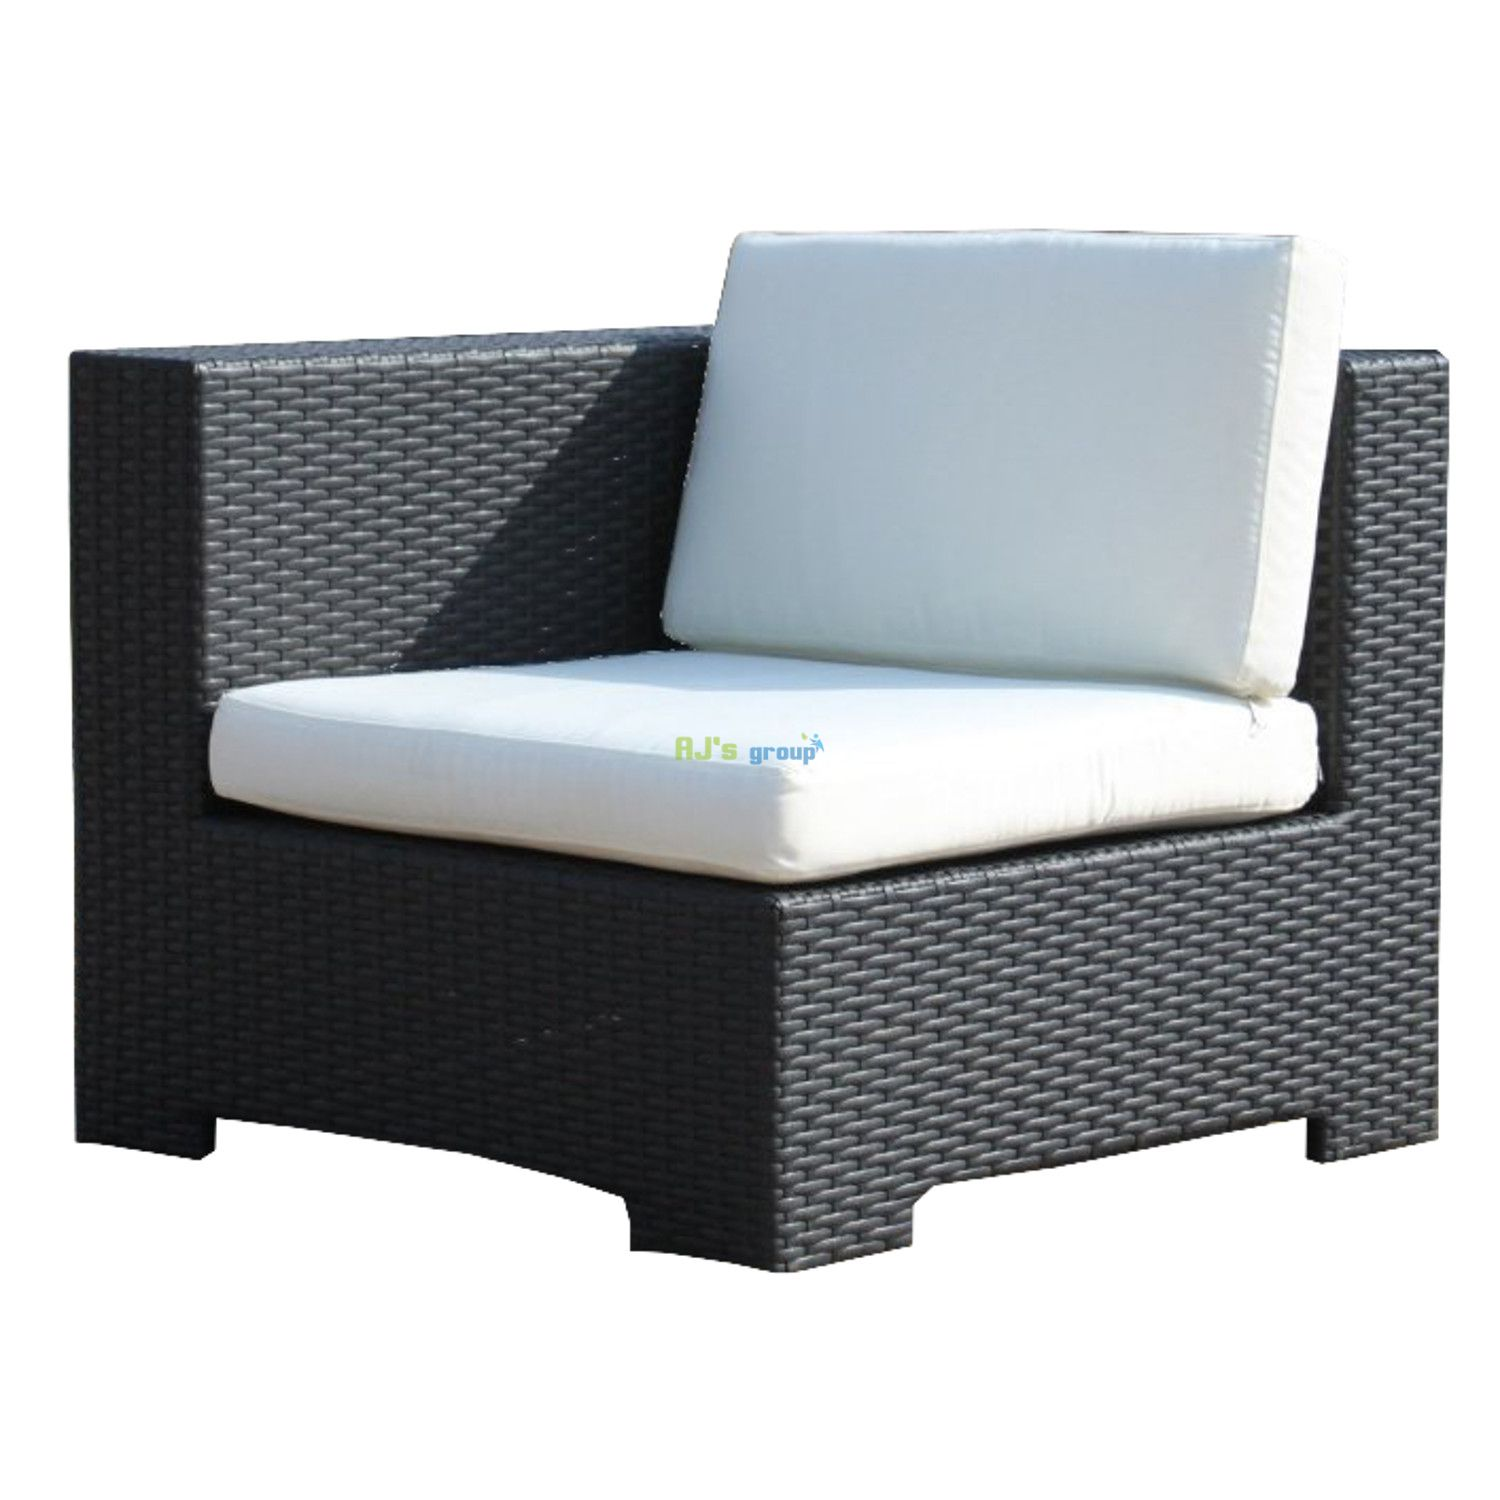 Rattan Wicker Garden Patio Set Los Angeles black Outdoor ...